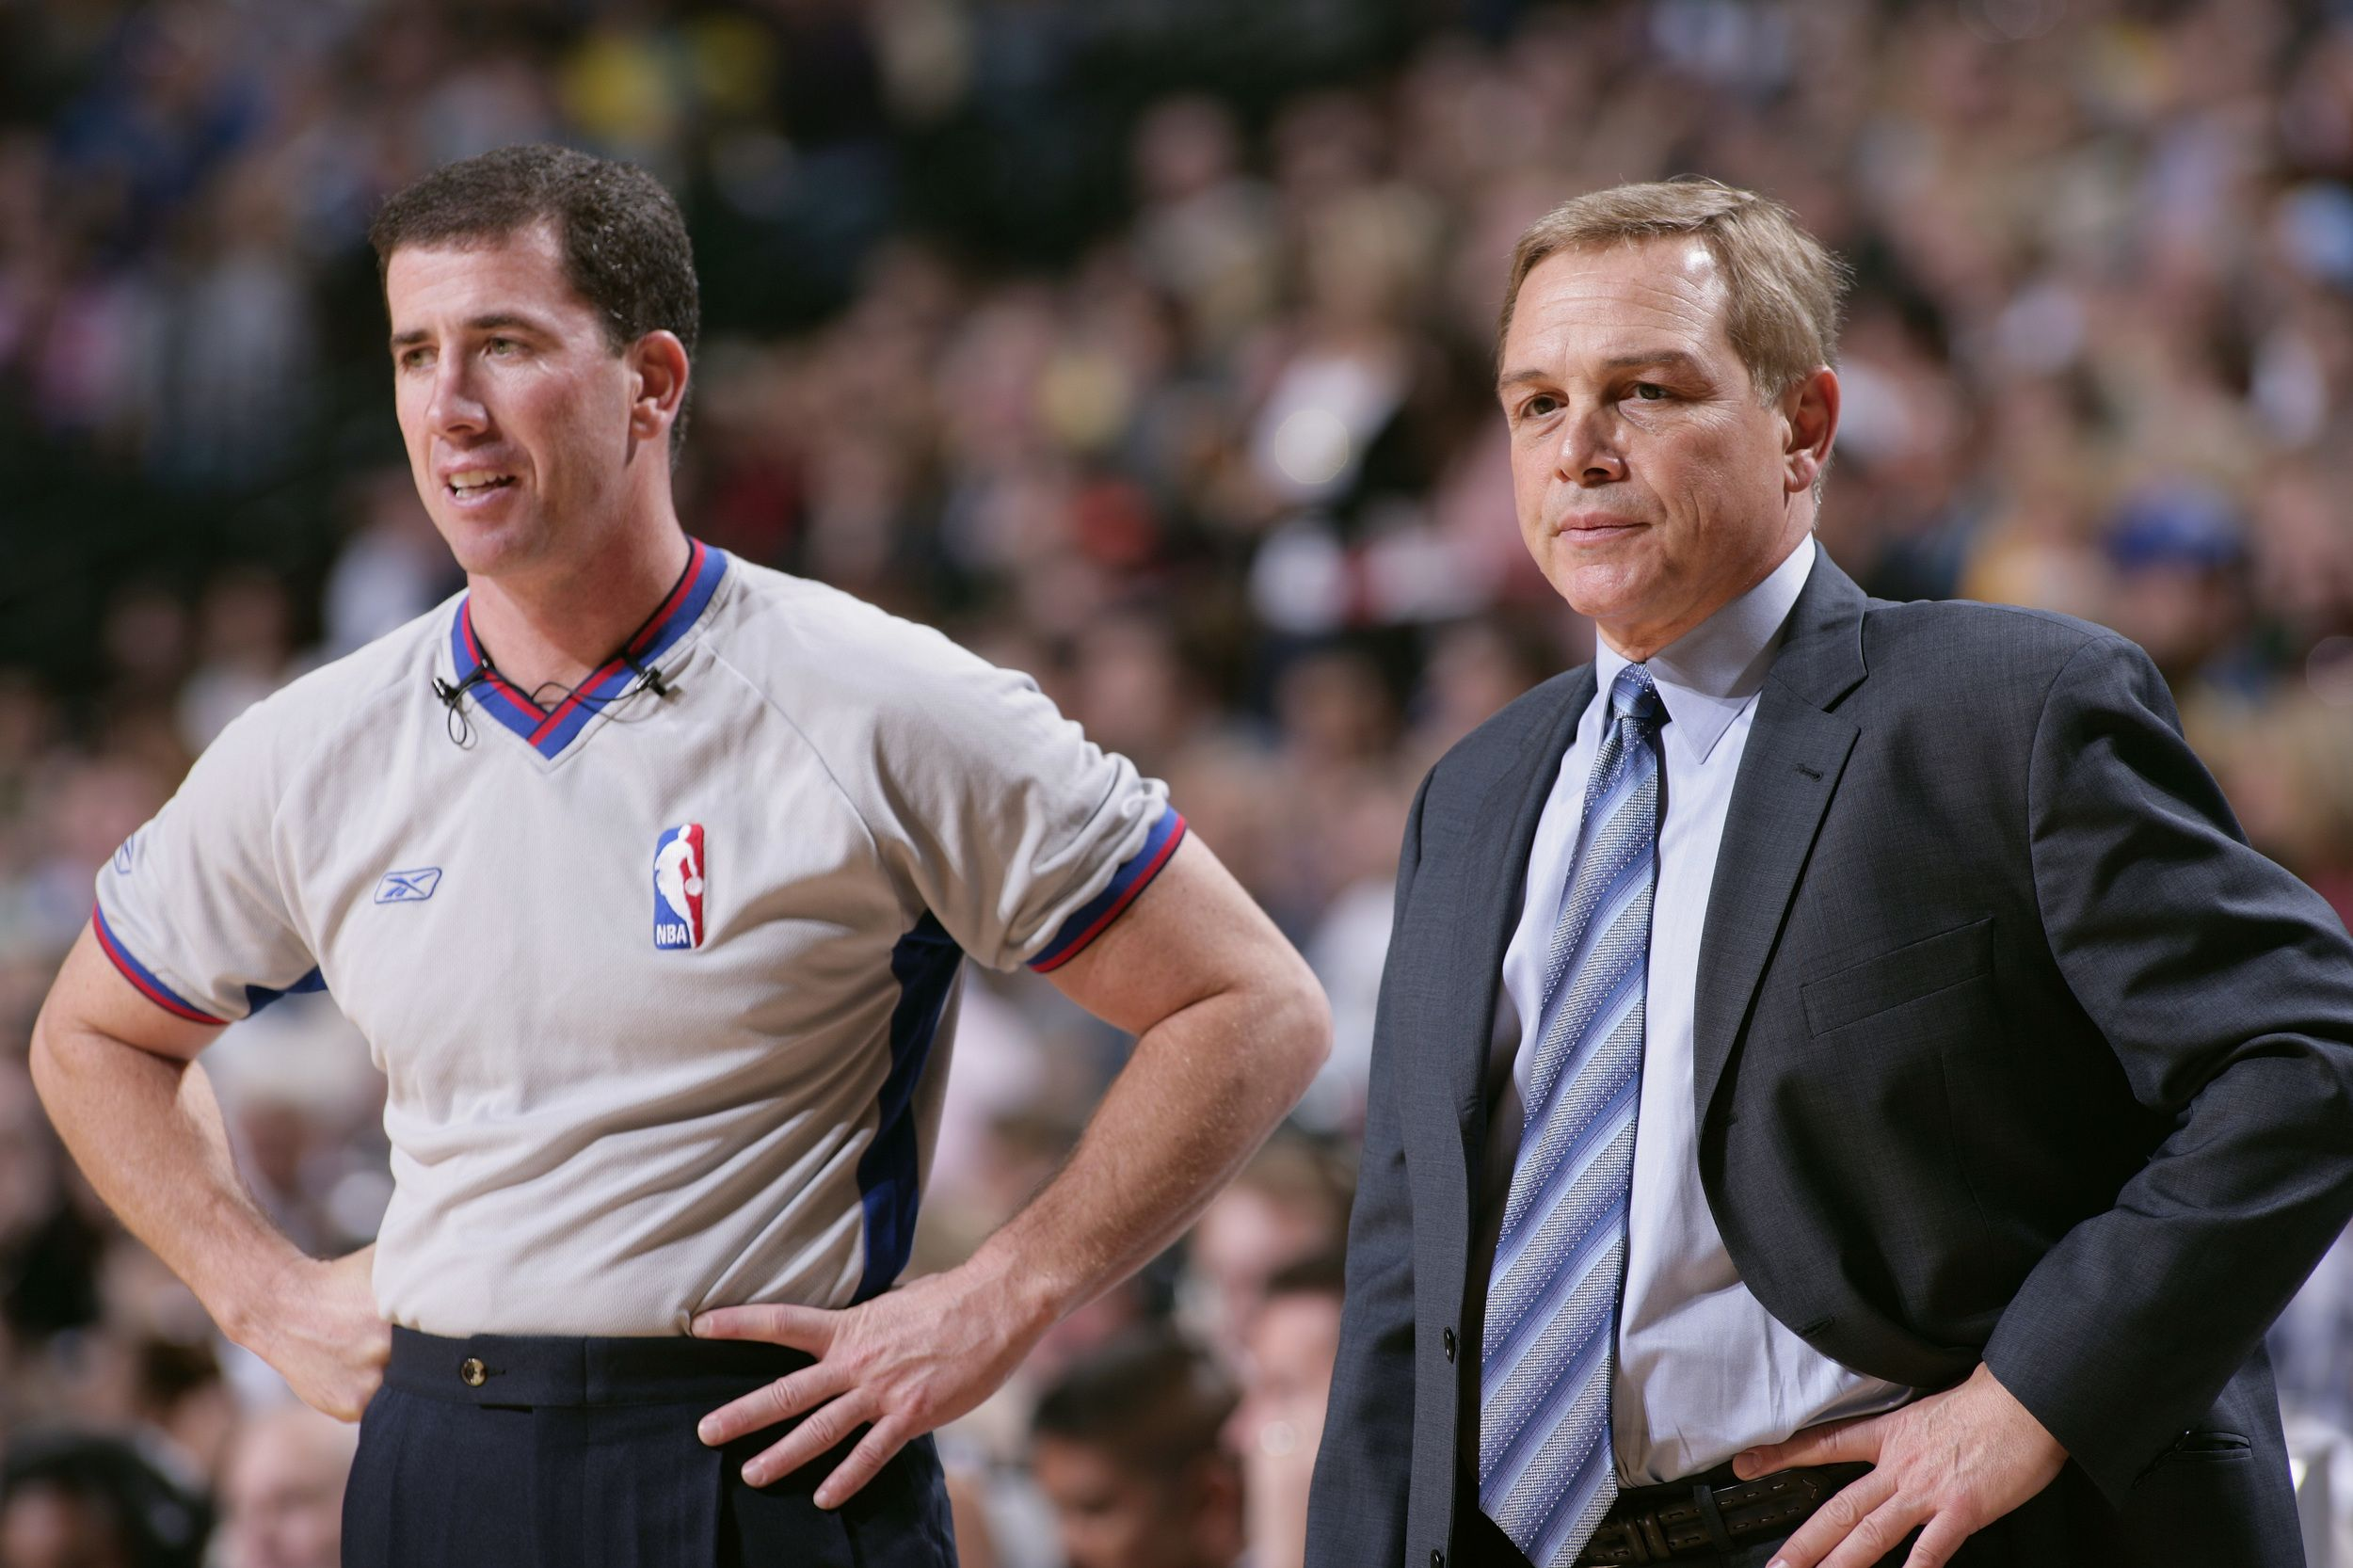 Nba referee gambling controversy rush and roulette game